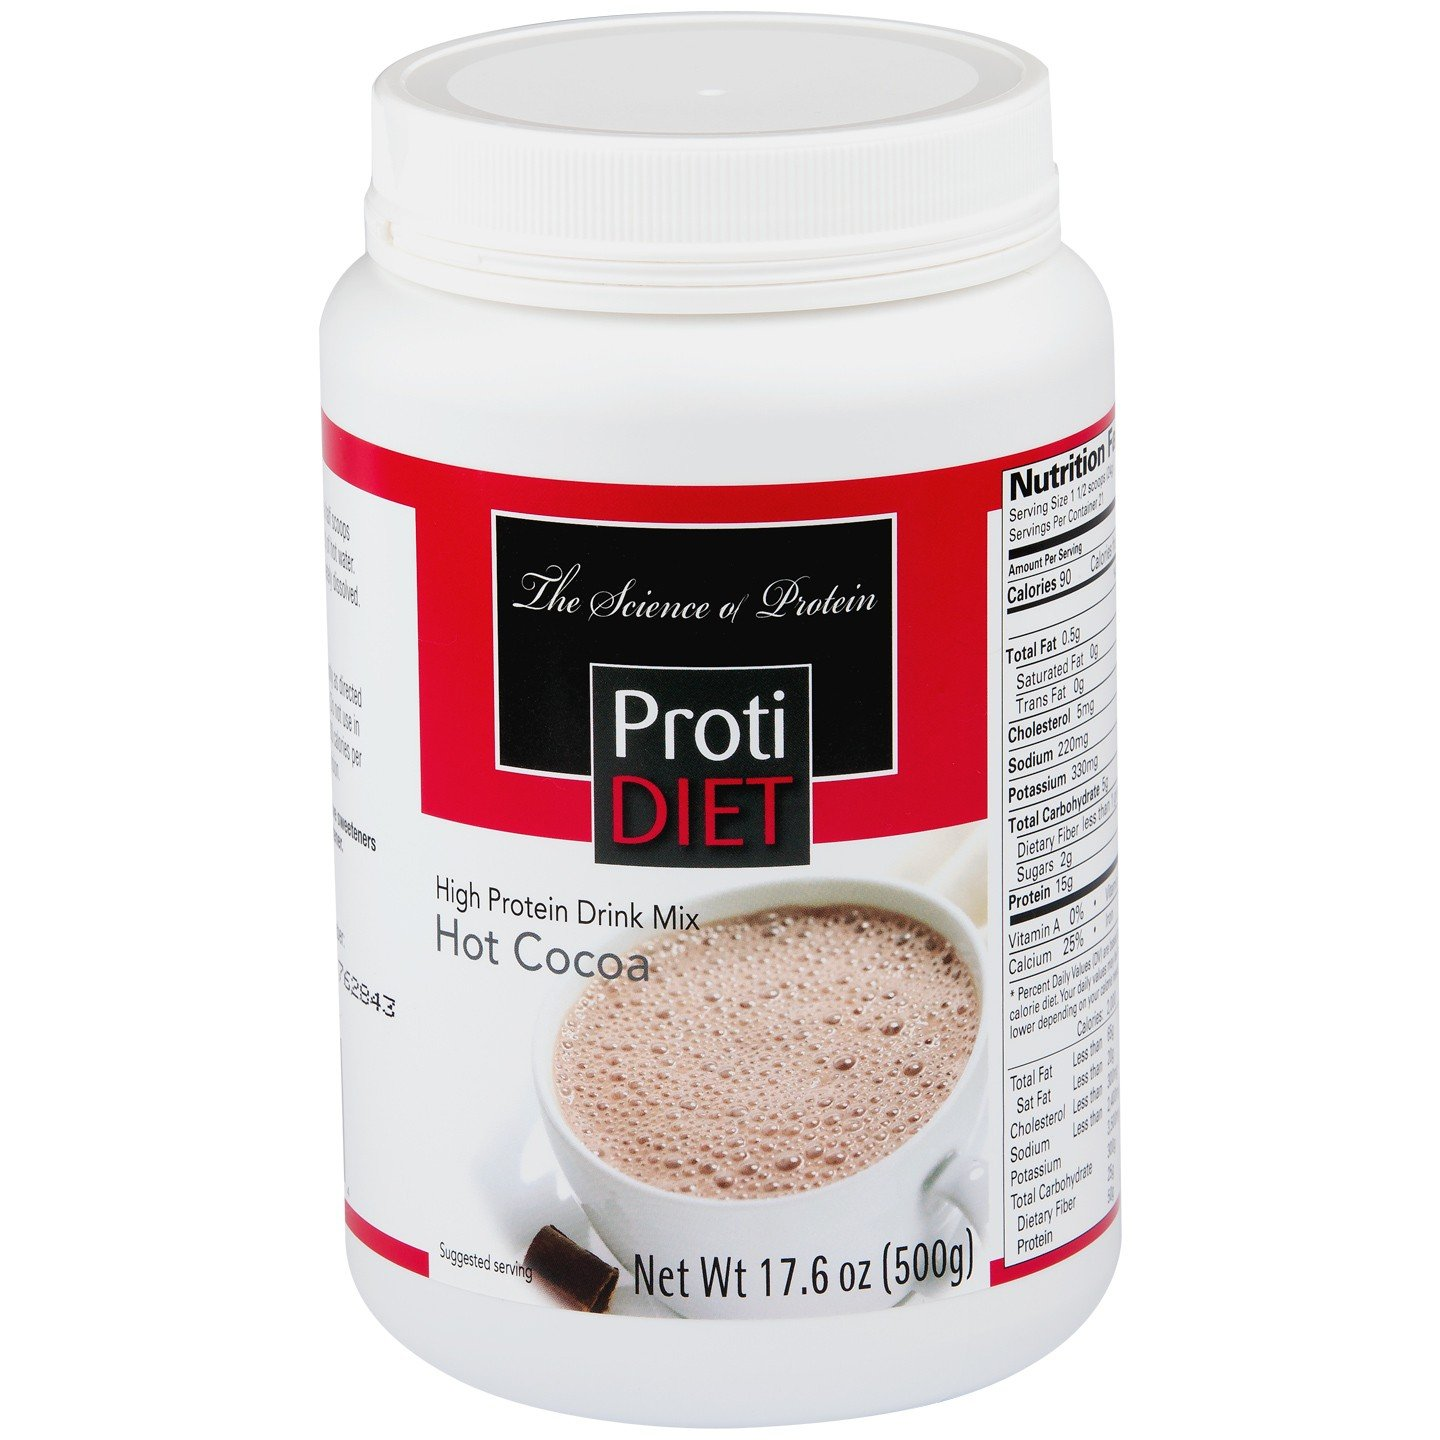 Amazon.com: Protidiet High Protein Hot Cocoa Drink Mix 17.6 oz ...